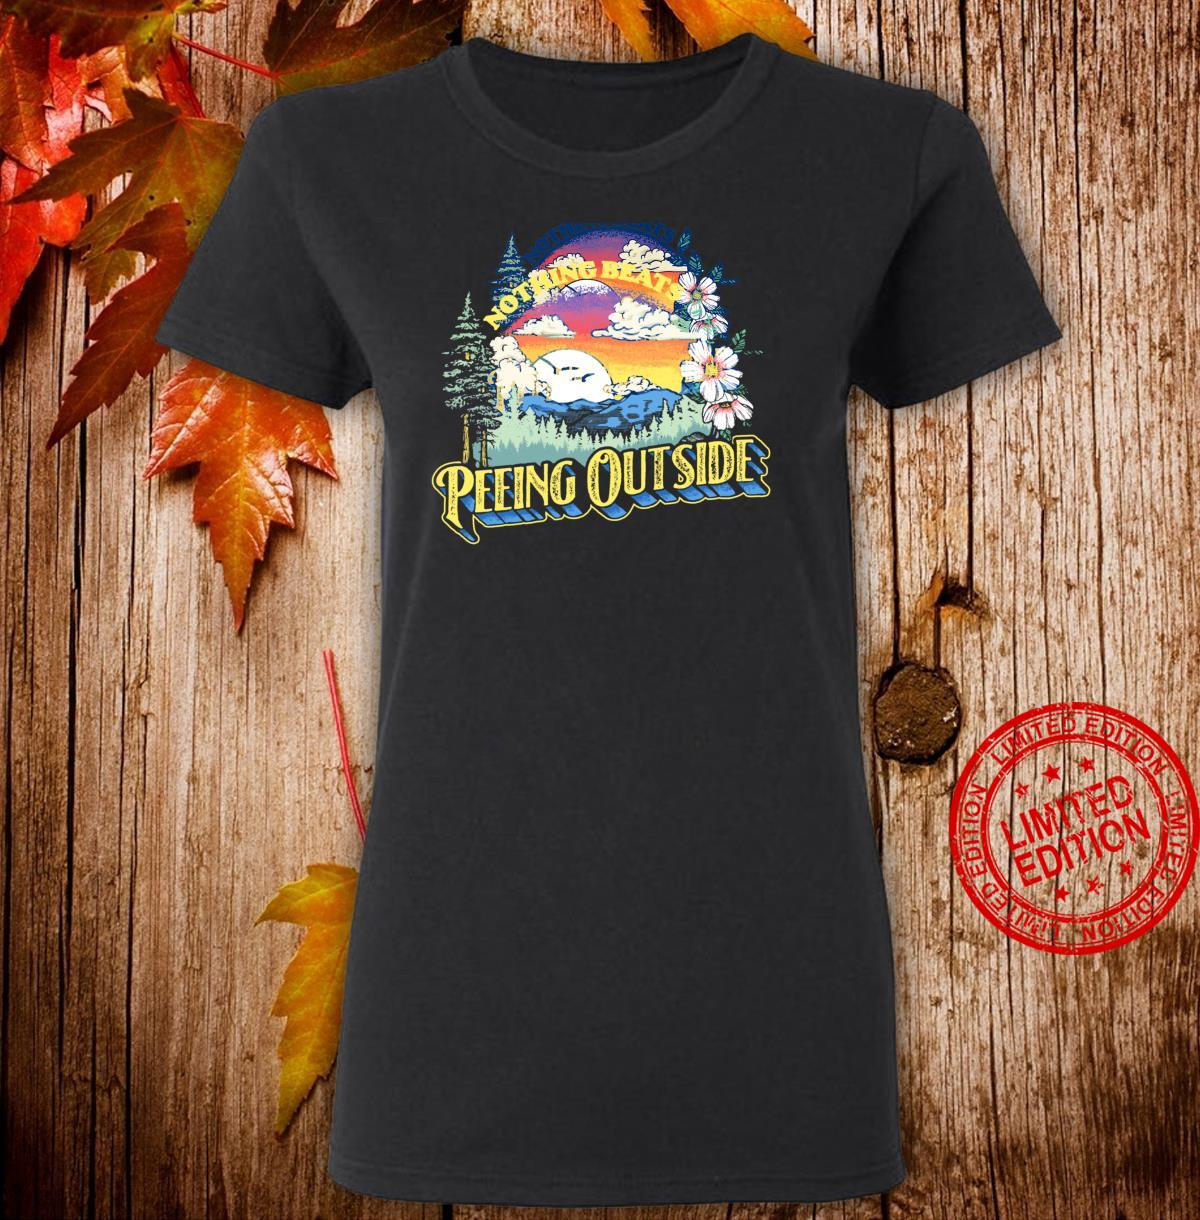 Nothing Beats Peeing Outside Camping & Nature Shirt ladies tee